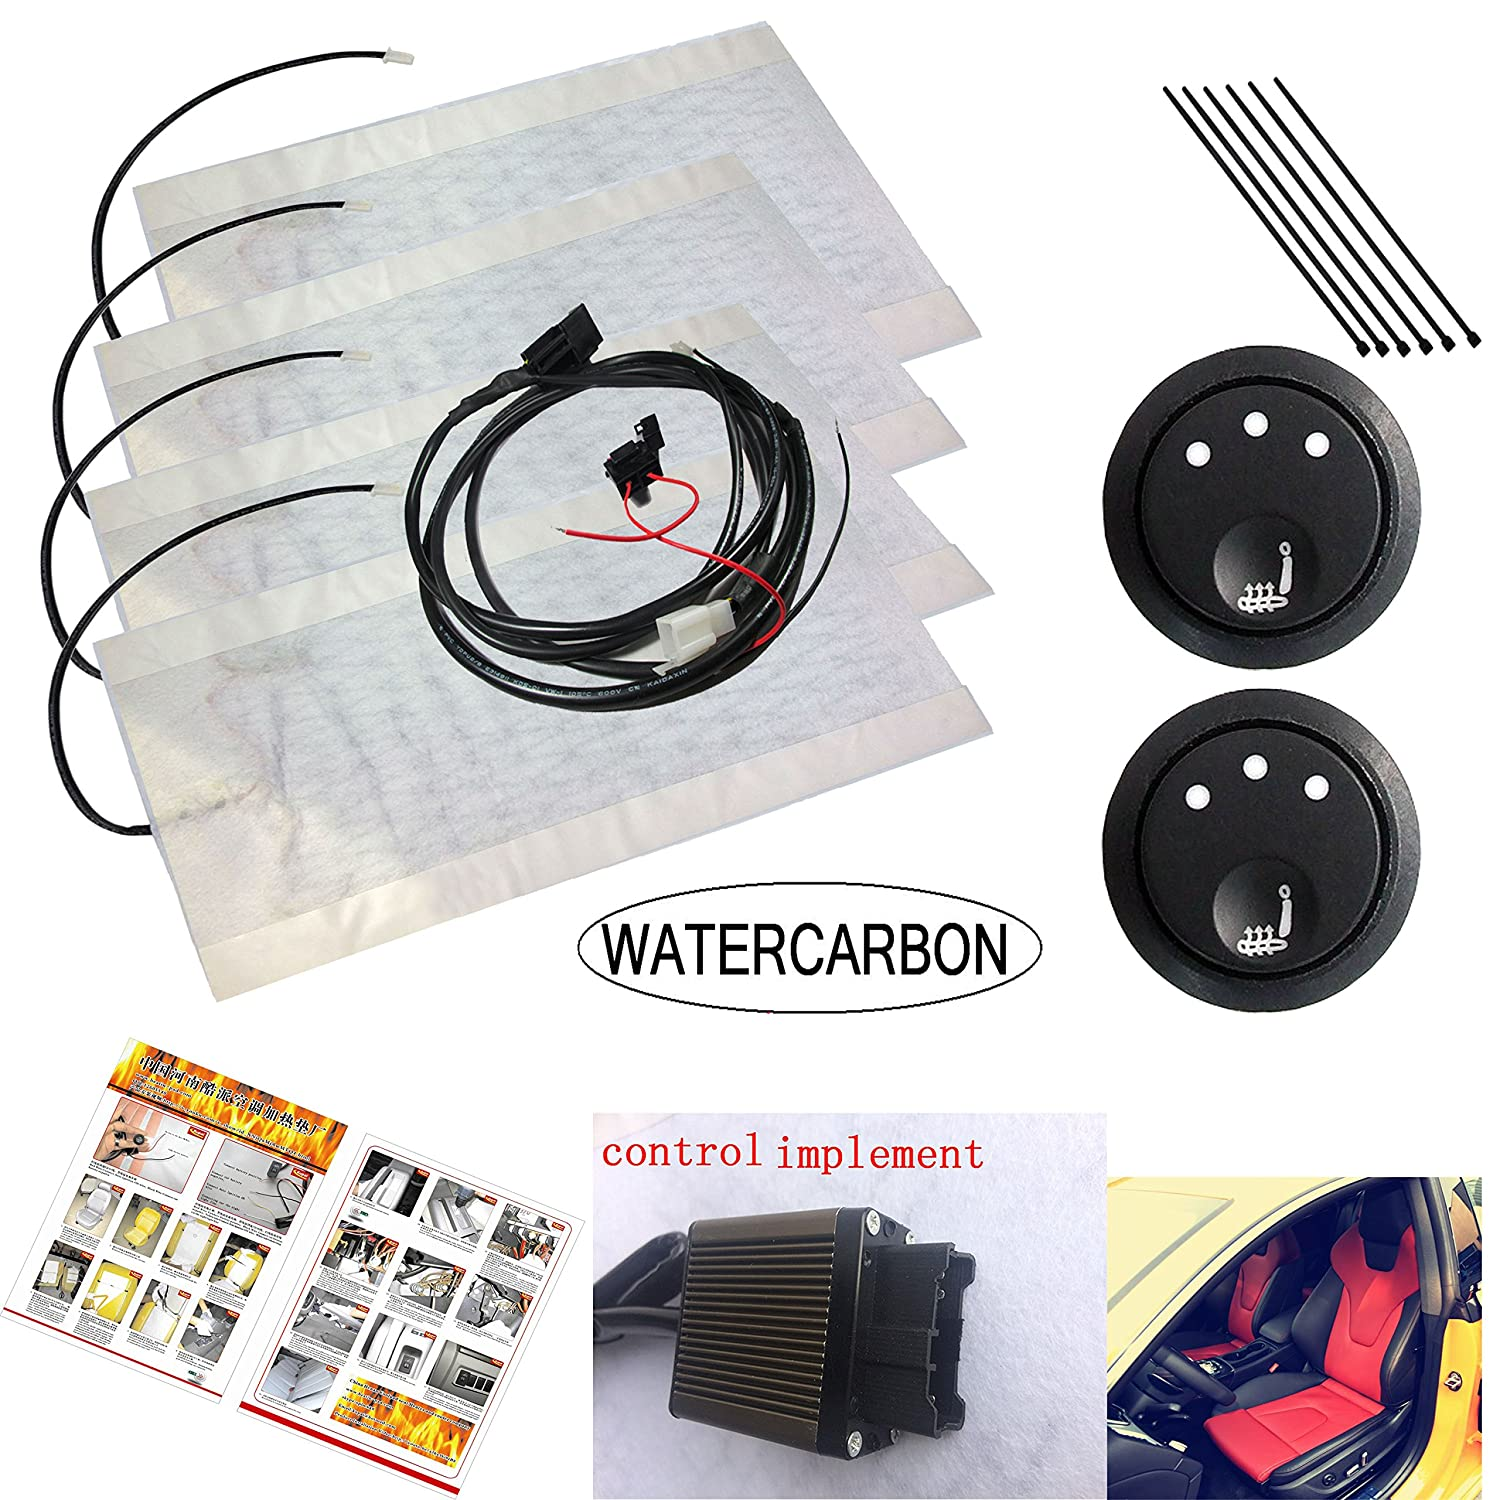 Carbon Fiber Seat Heater Kit 3 White Point Round 3 Gear Heating Switch Set Car Auto Heated Heating Seat Cushion Cover Heater Warmer Pad Winter 12V WATERCARBON WATERCARBON 10-23